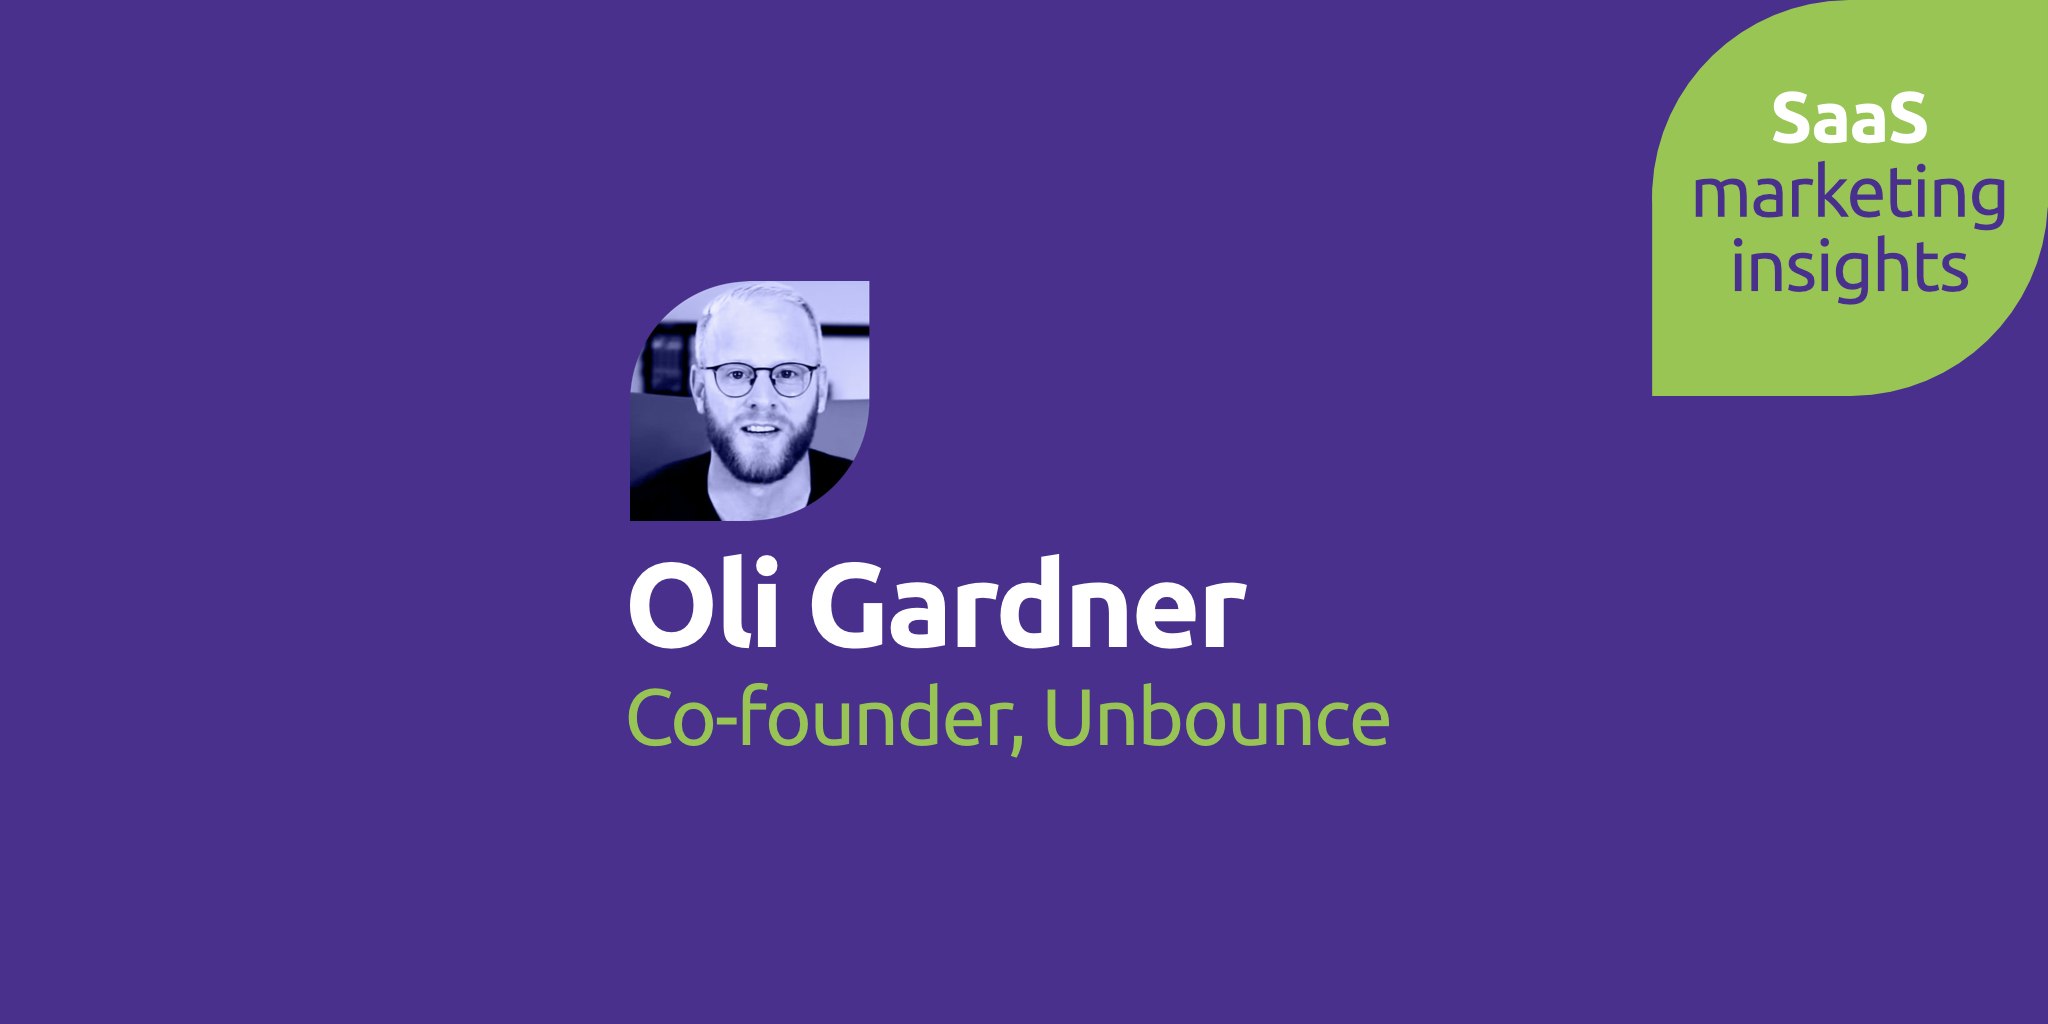 Ep. 4: Oli Gardner Reveals The Three Big Unbounce Bets for 2018